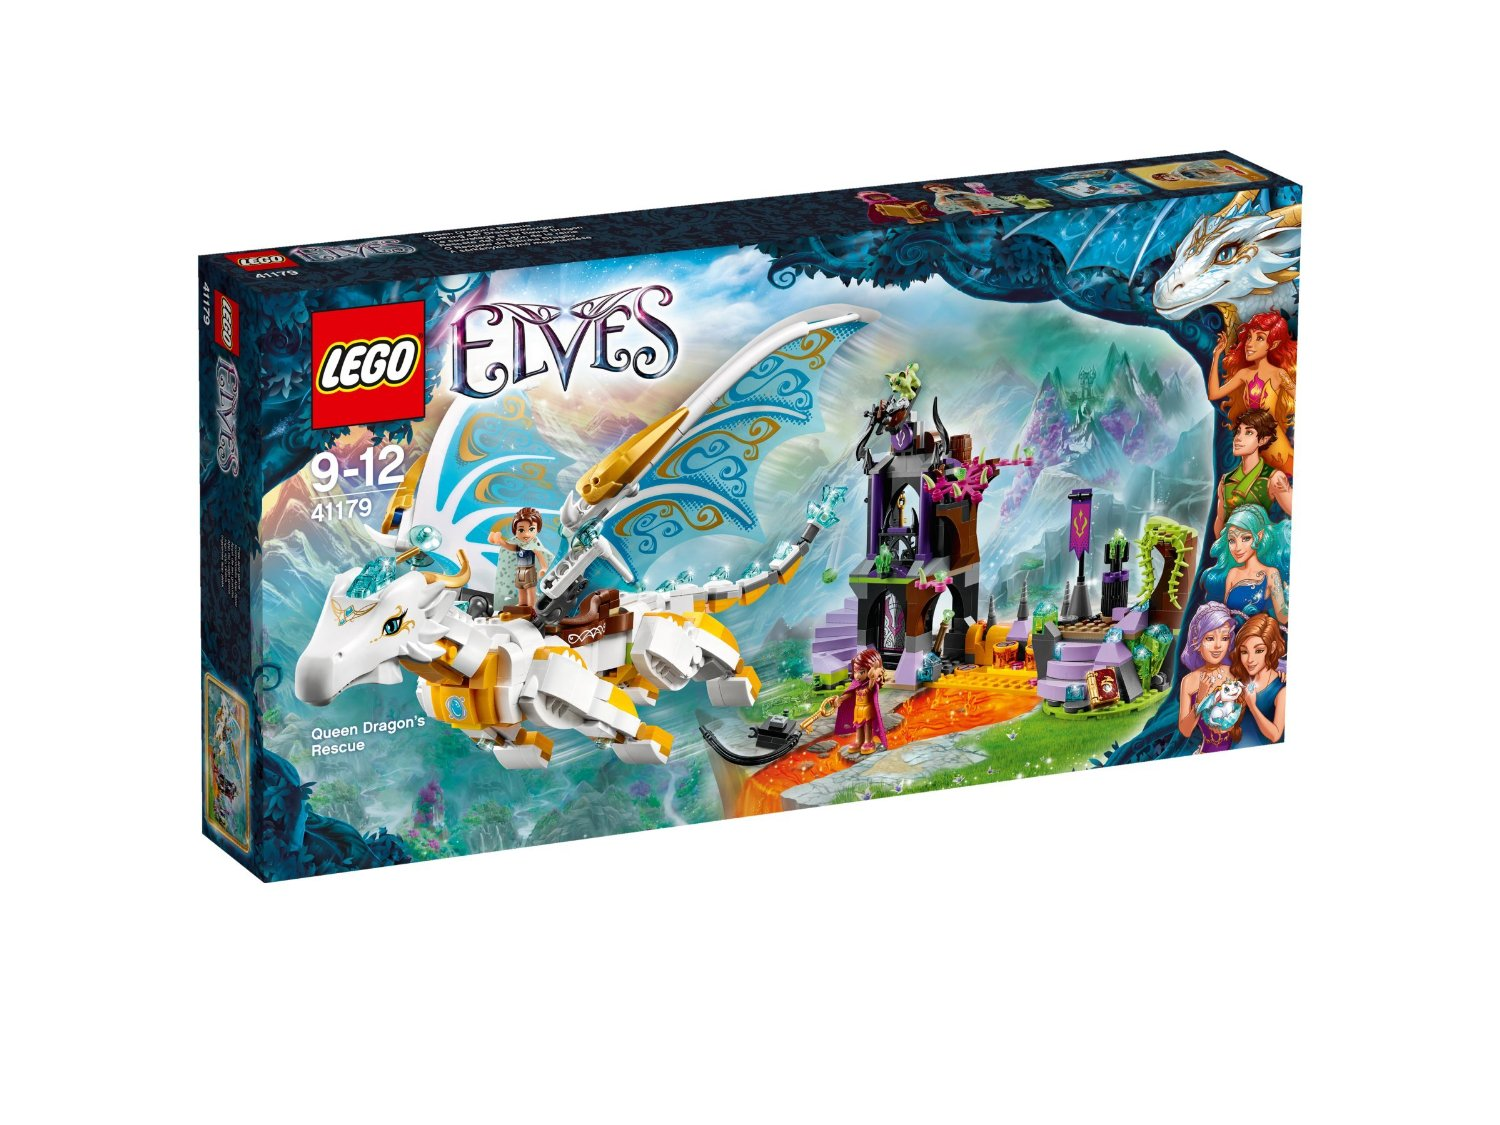 Lego Elves 2016 ! - Page 7 91z-6a10